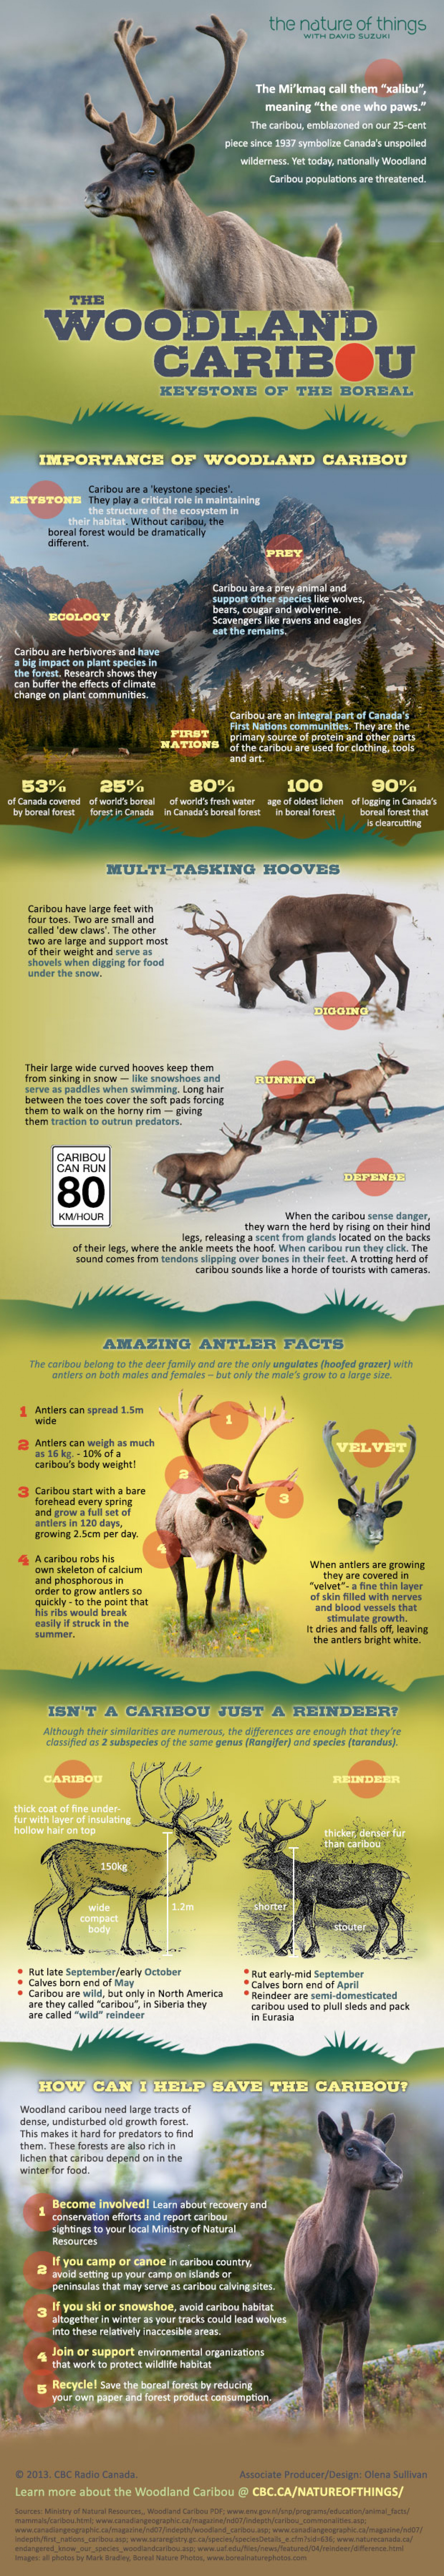 The Woodland Caribou Infographic